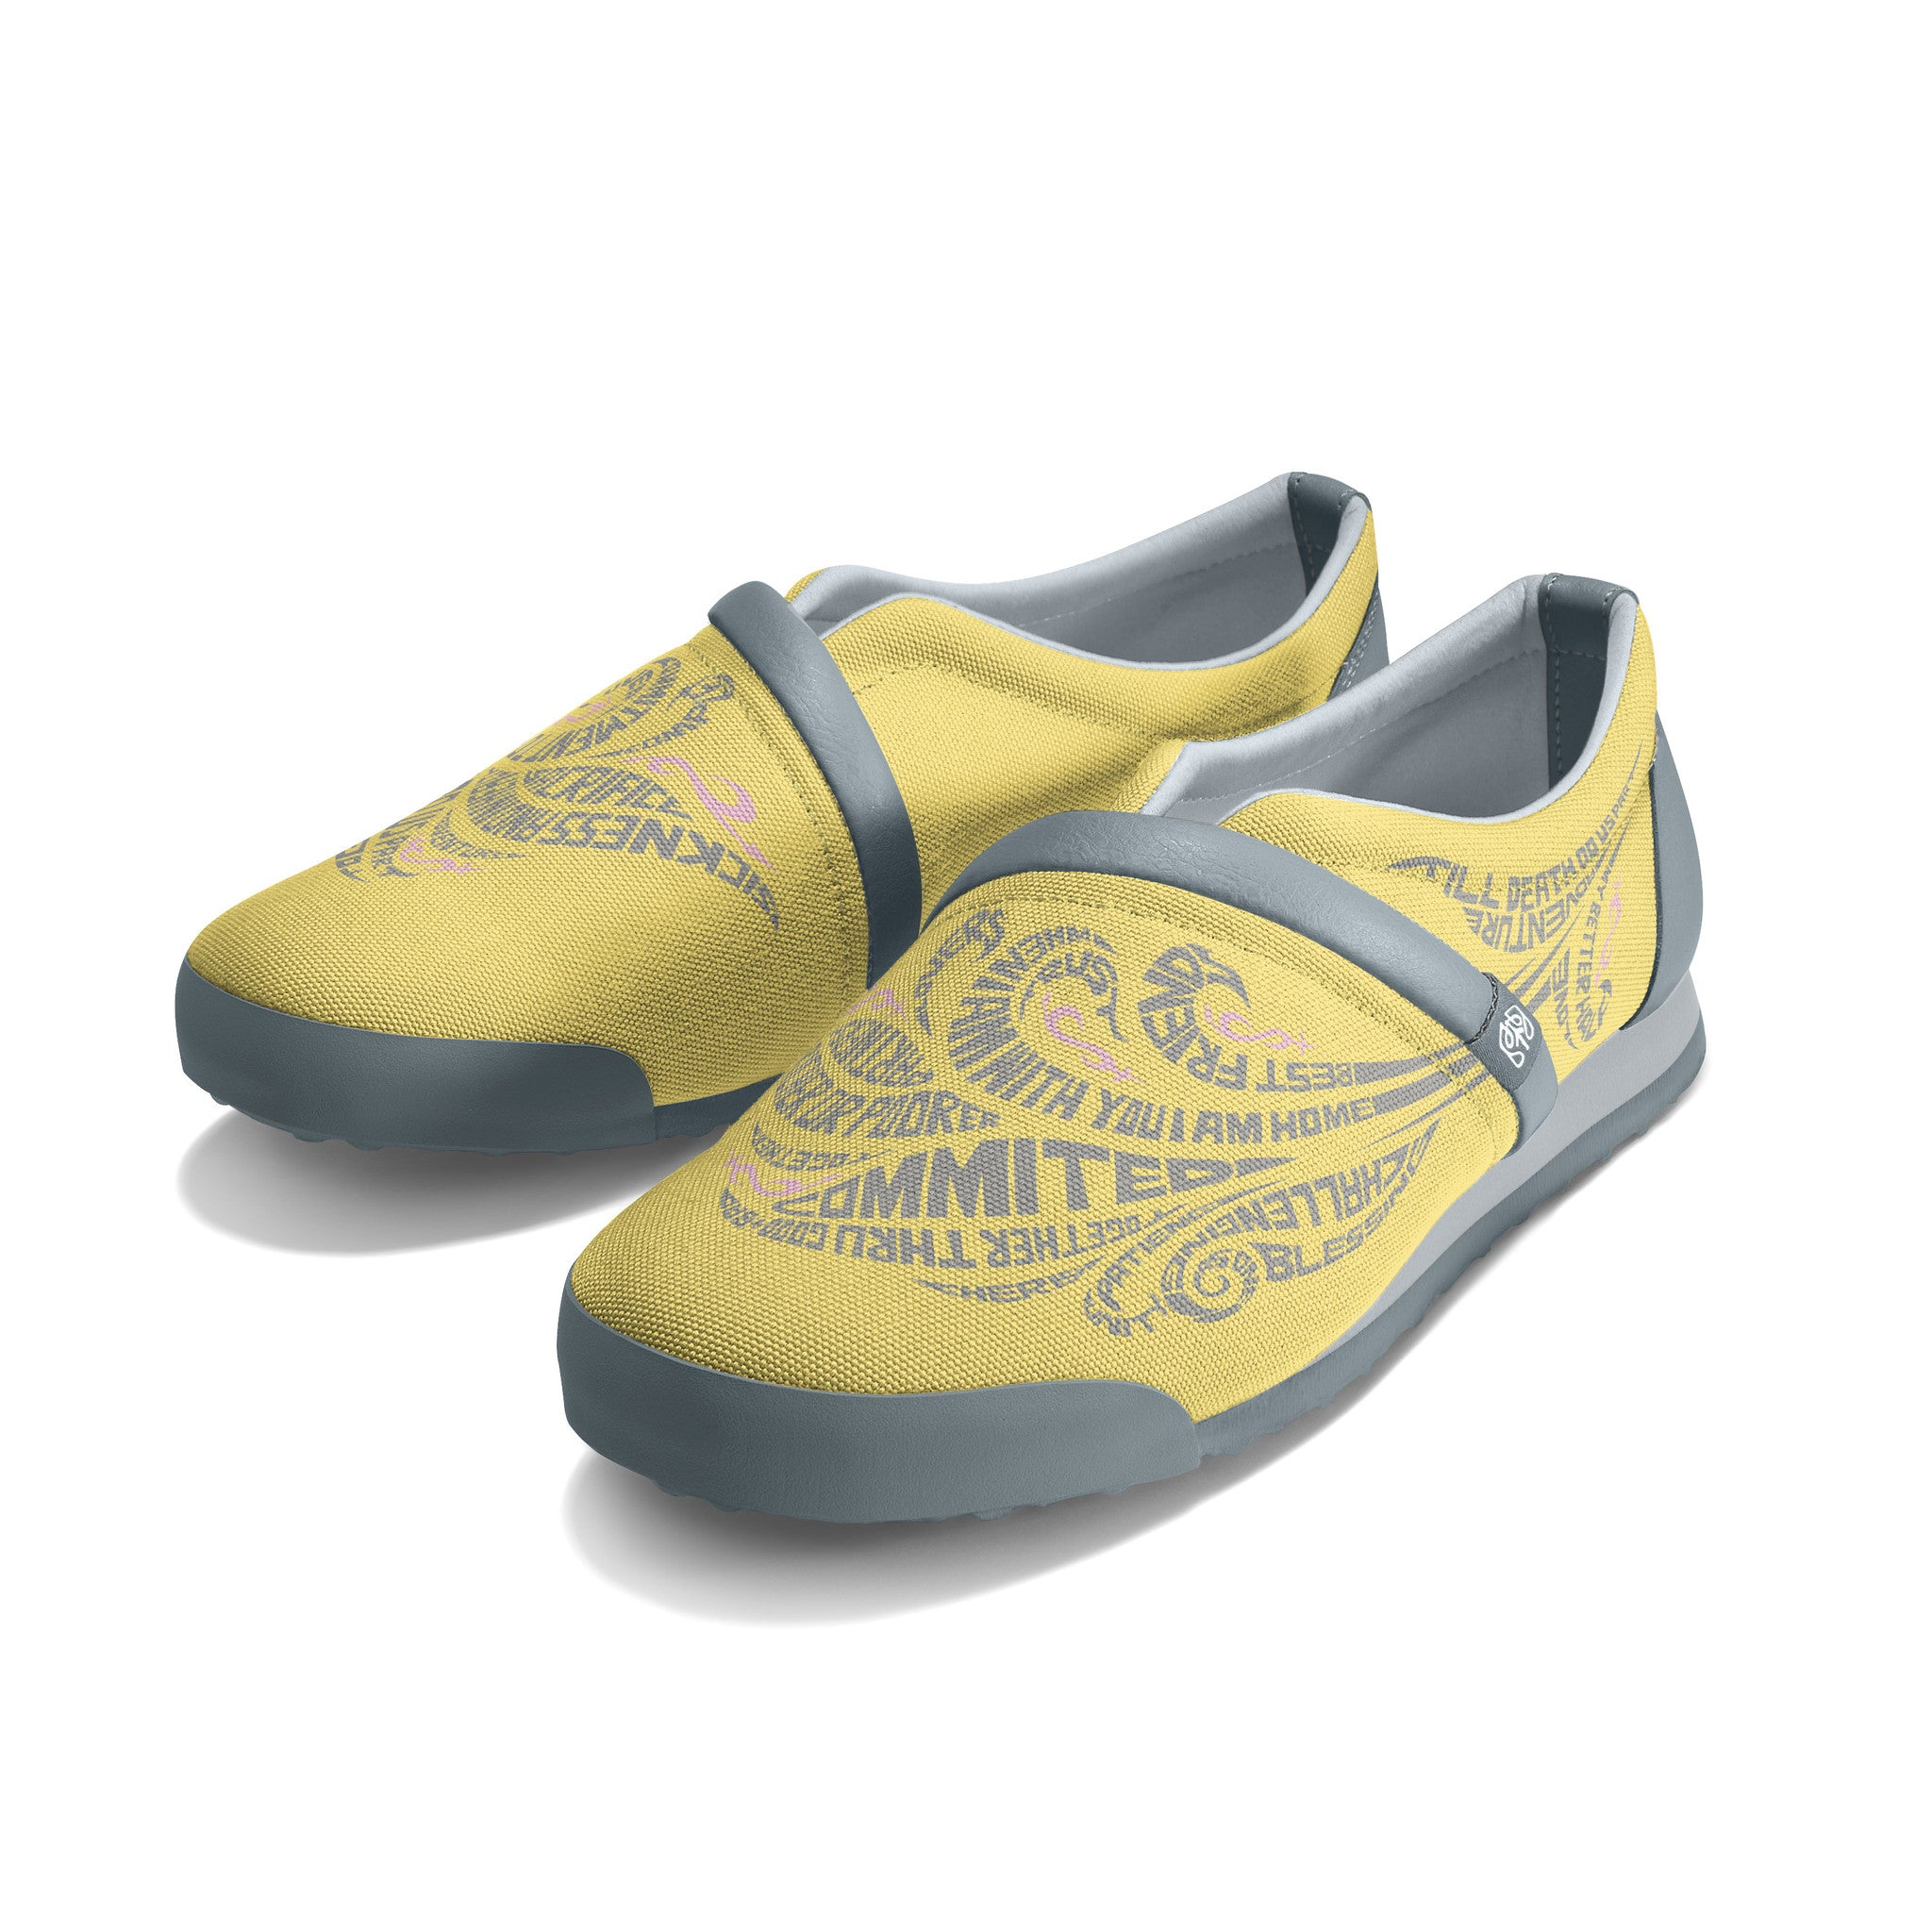 Goldfinch - Common Ground Footwear Shoes Left Perspective View